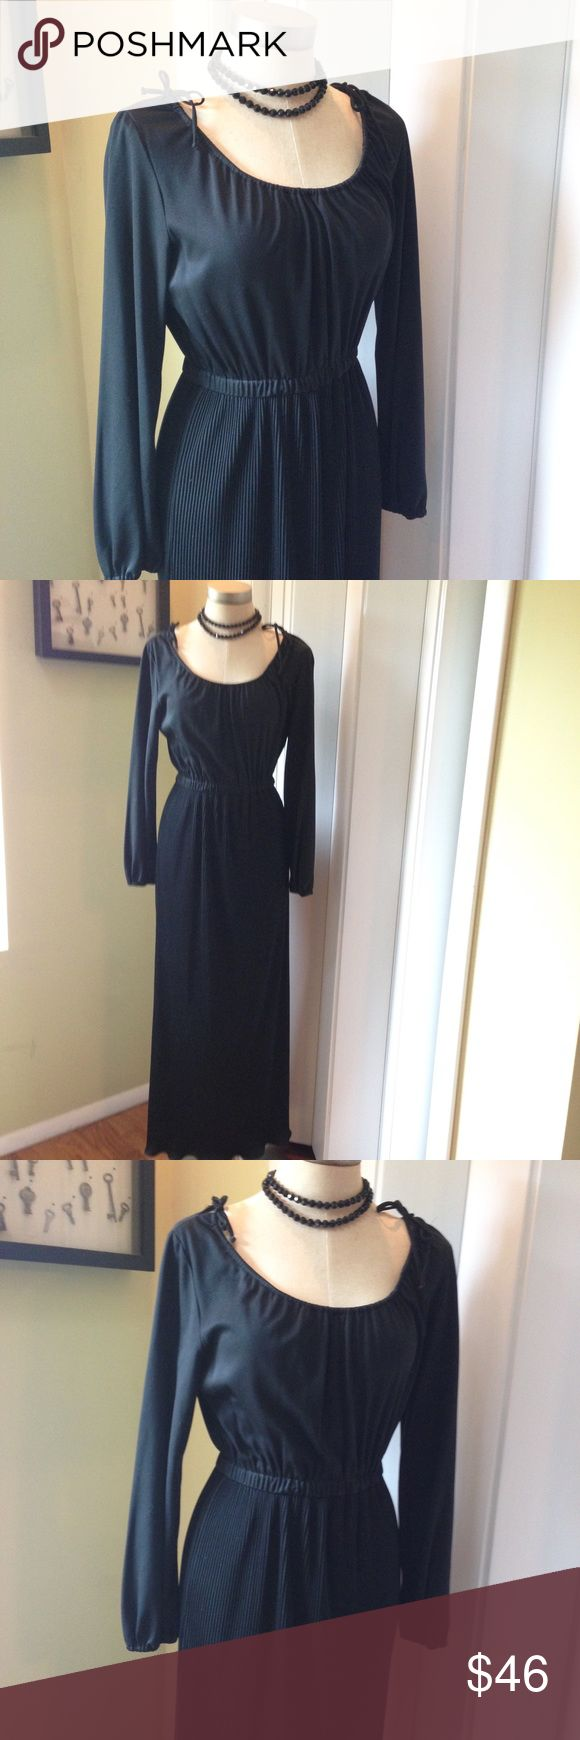 Black Vintage Accordion Gown Beautiful slimming vintage black polyester accordion gown. Labeled a 12, best fit 8/10. In great condition. Elastic waist. Side shoulder ties to adjust bust/ overall front look. Necklace not included but for sale in my closet. Vintage Dresses Maxi